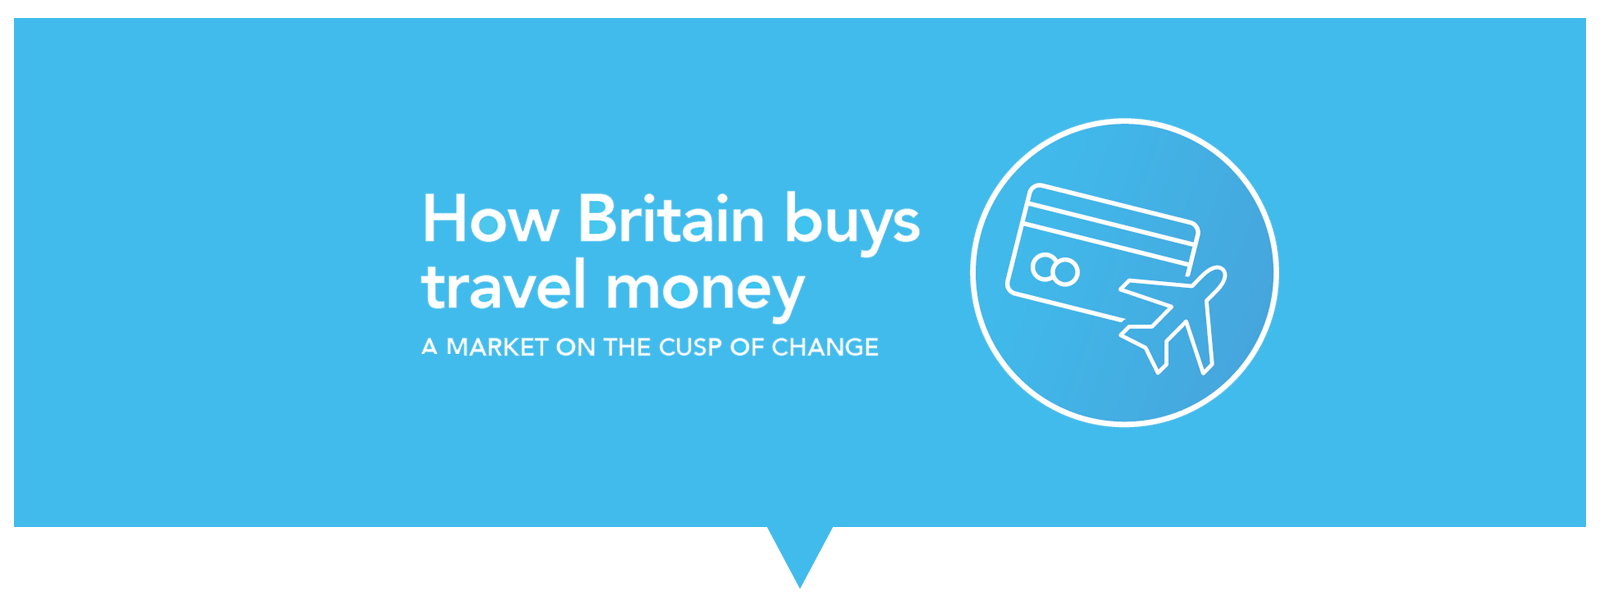 britain-buys-travel-money-infographic.png